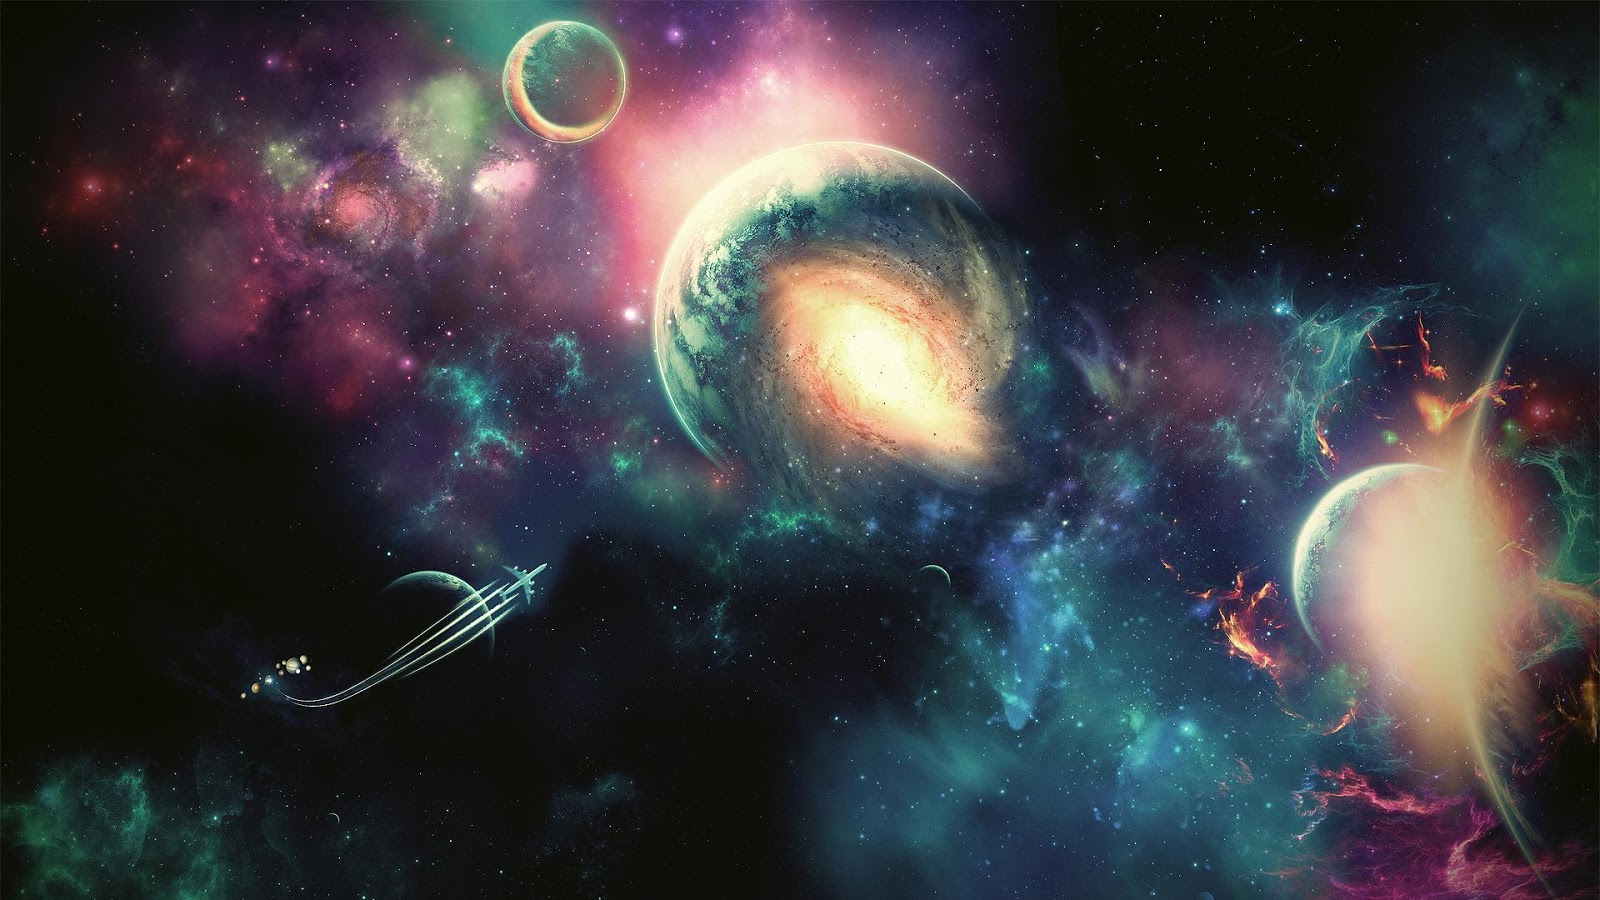 planet space hd wallpapers 1080p - photo #20